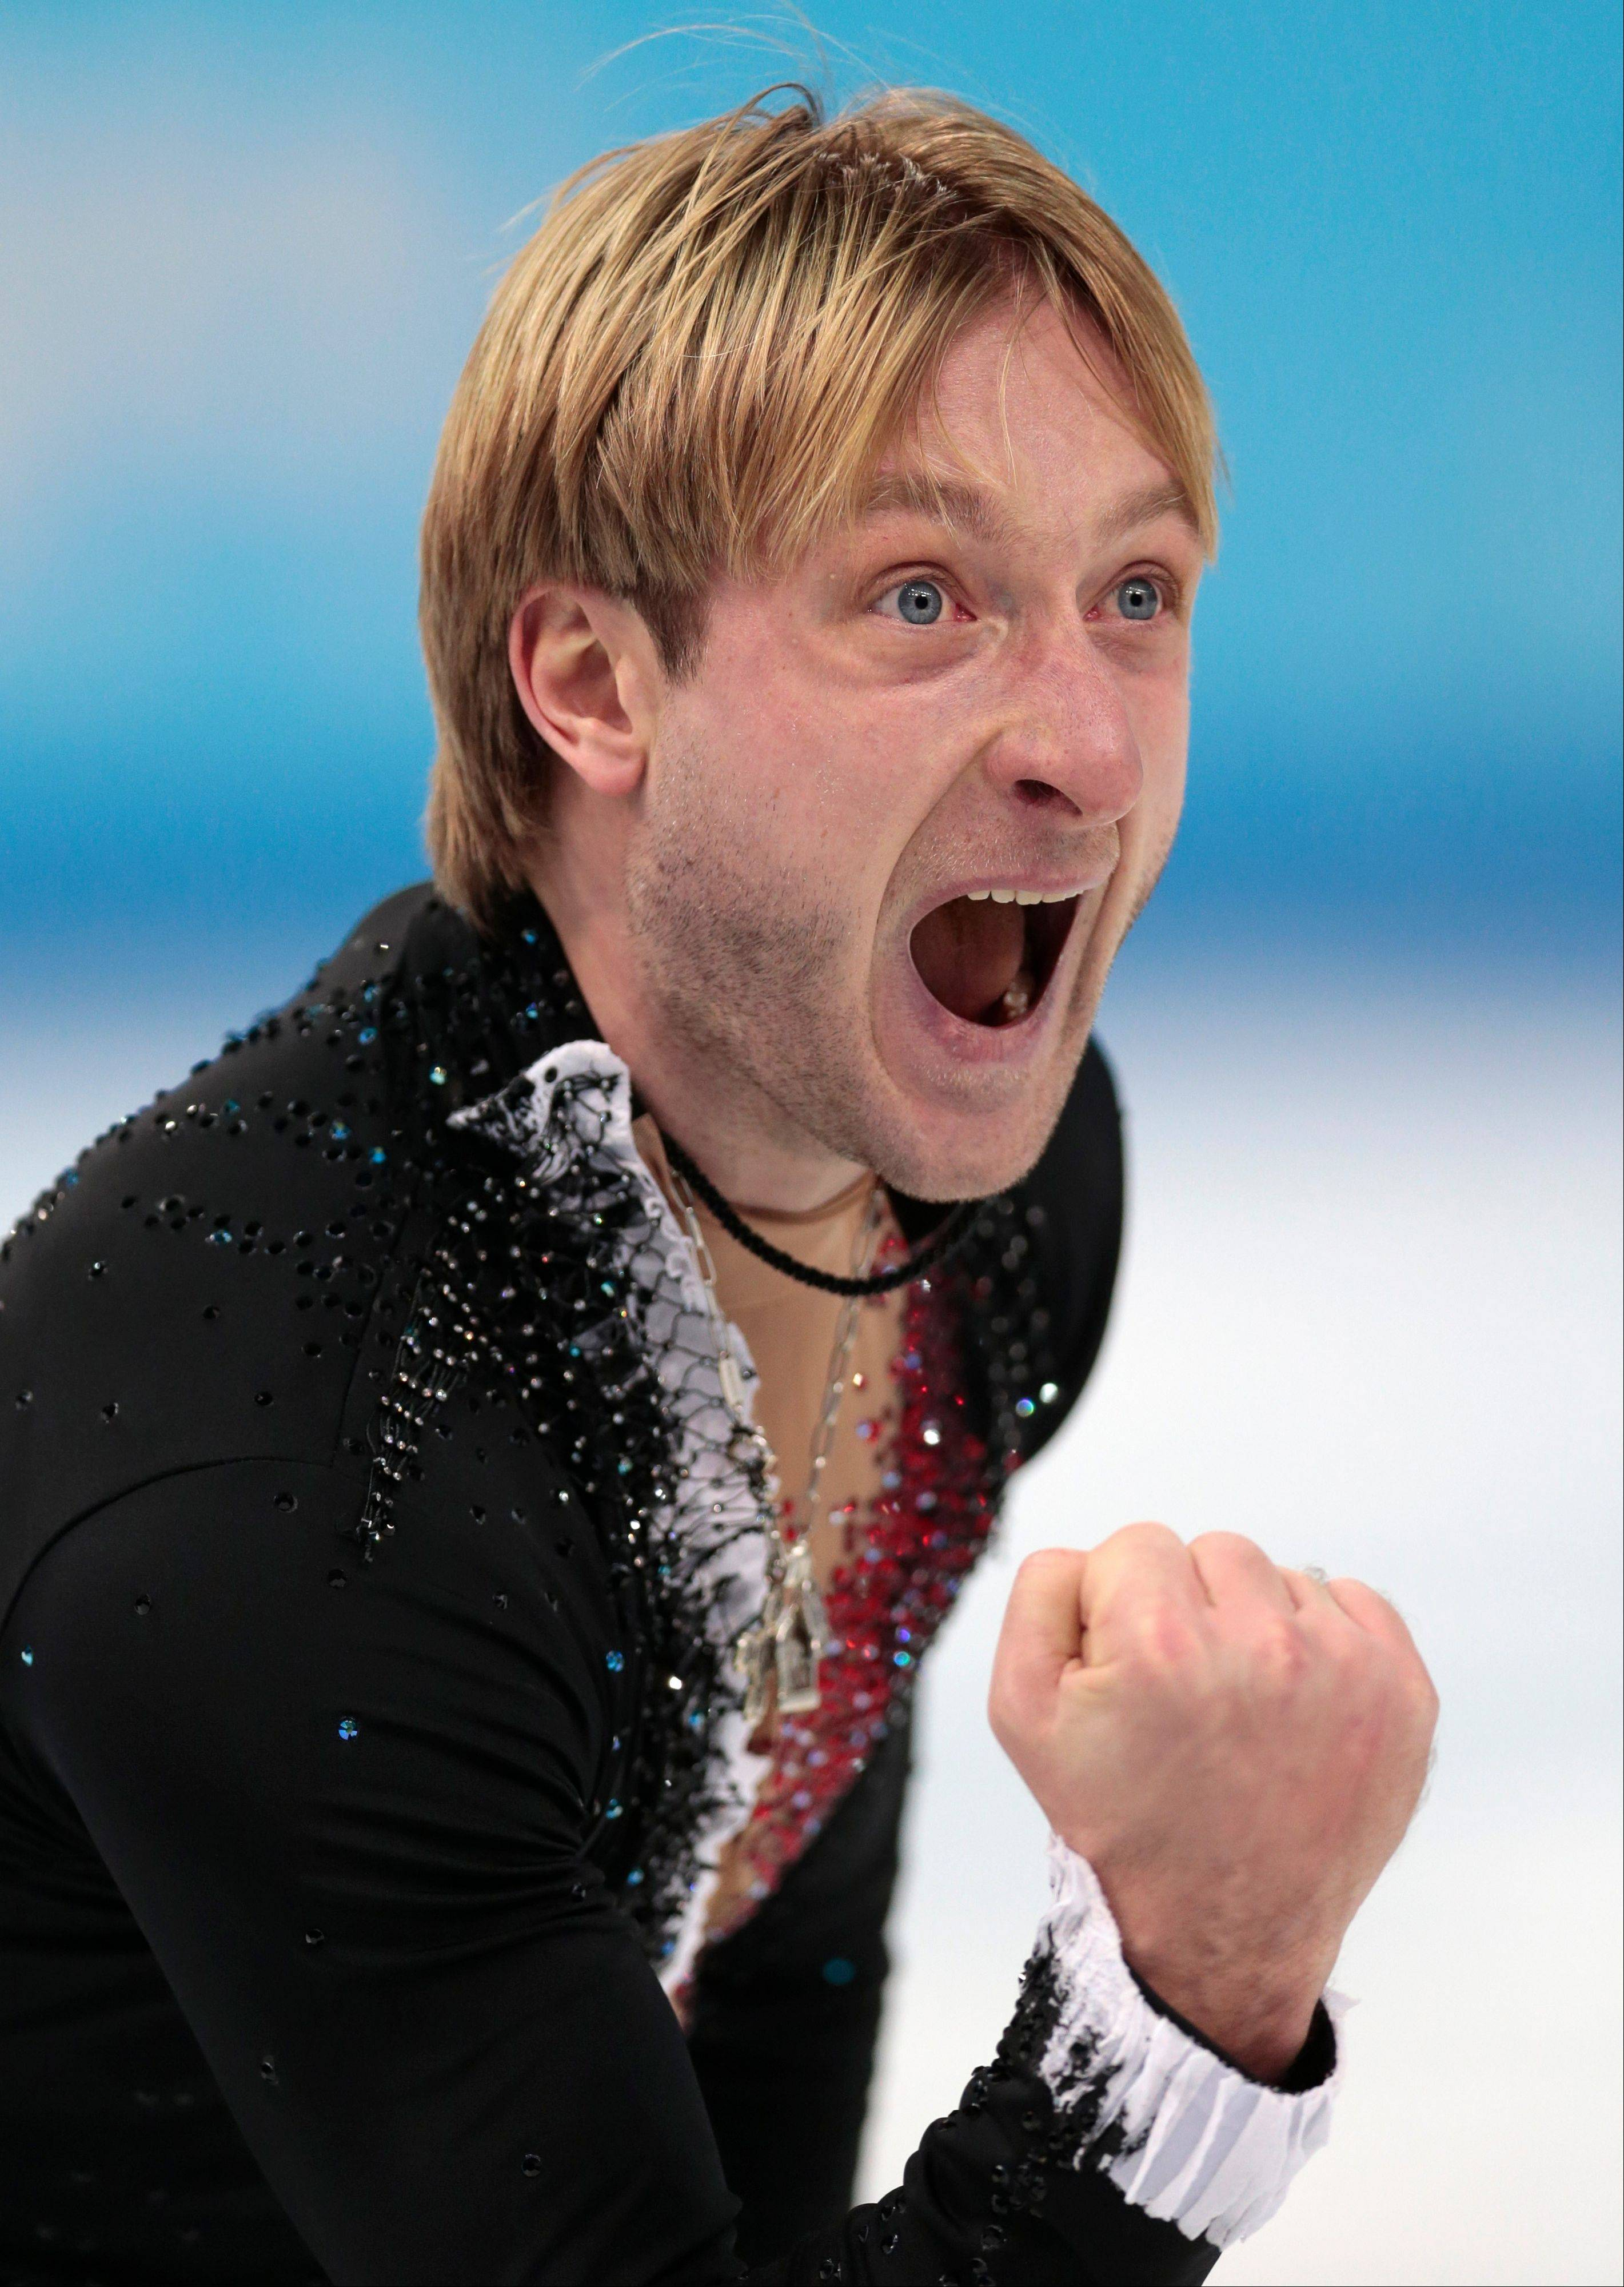 Evgeny Plyushchenko of Russia celebrates after competing in the men's team short program figure skating competition at the Iceberg Skating Palace during the 2014 Winter Olympics.